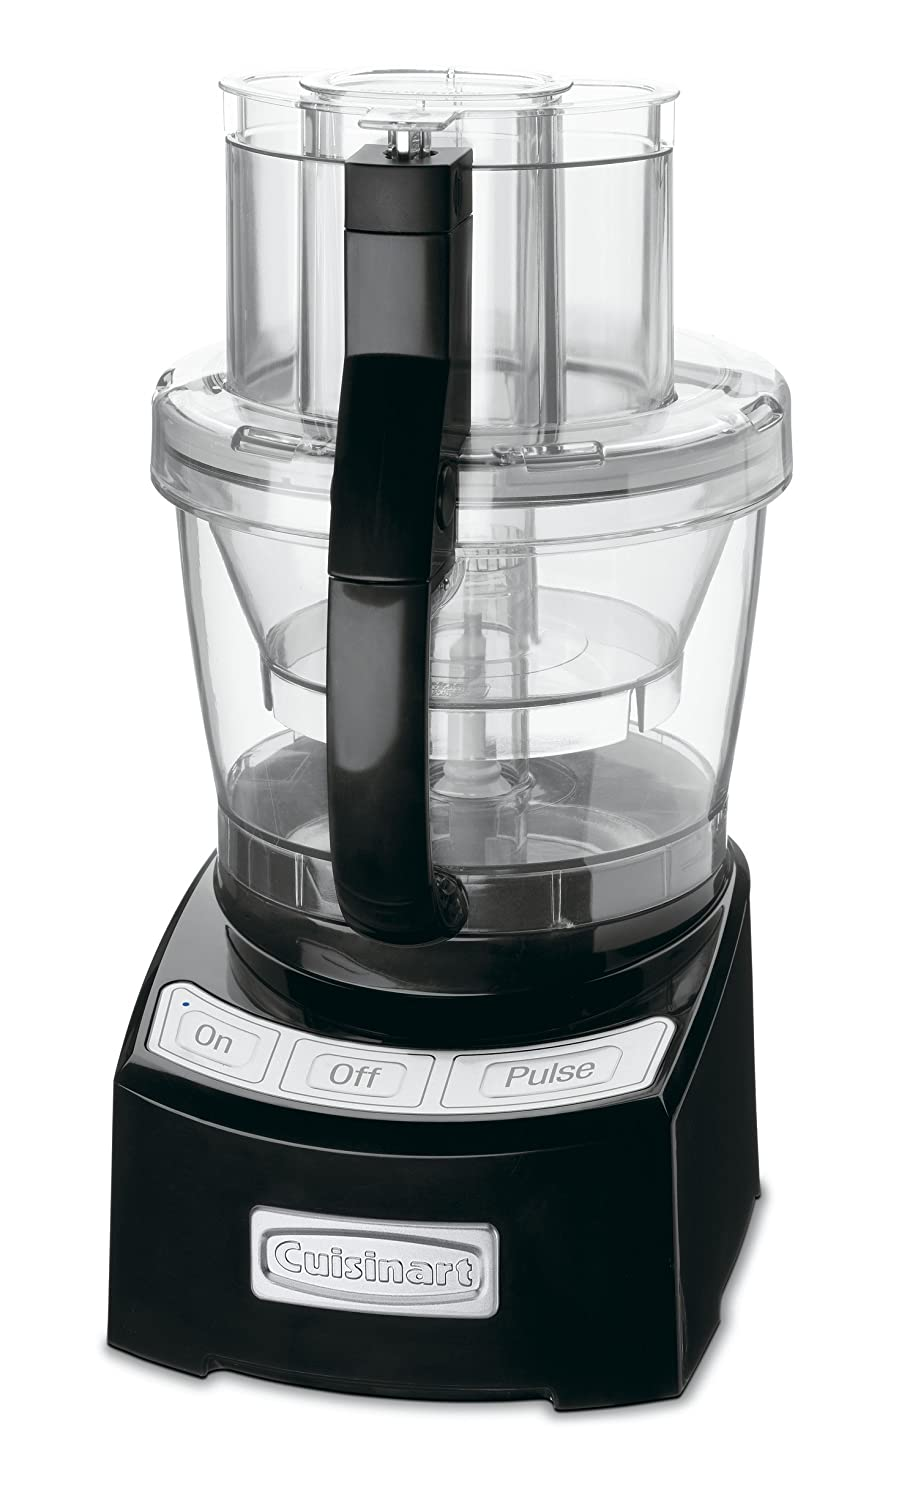 amazon com cuisinart fp 12bk elite collection 12 cup food amazon com cuisinart fp 12bk elite collection 12 cup food processor black full size food processors kitchen dining